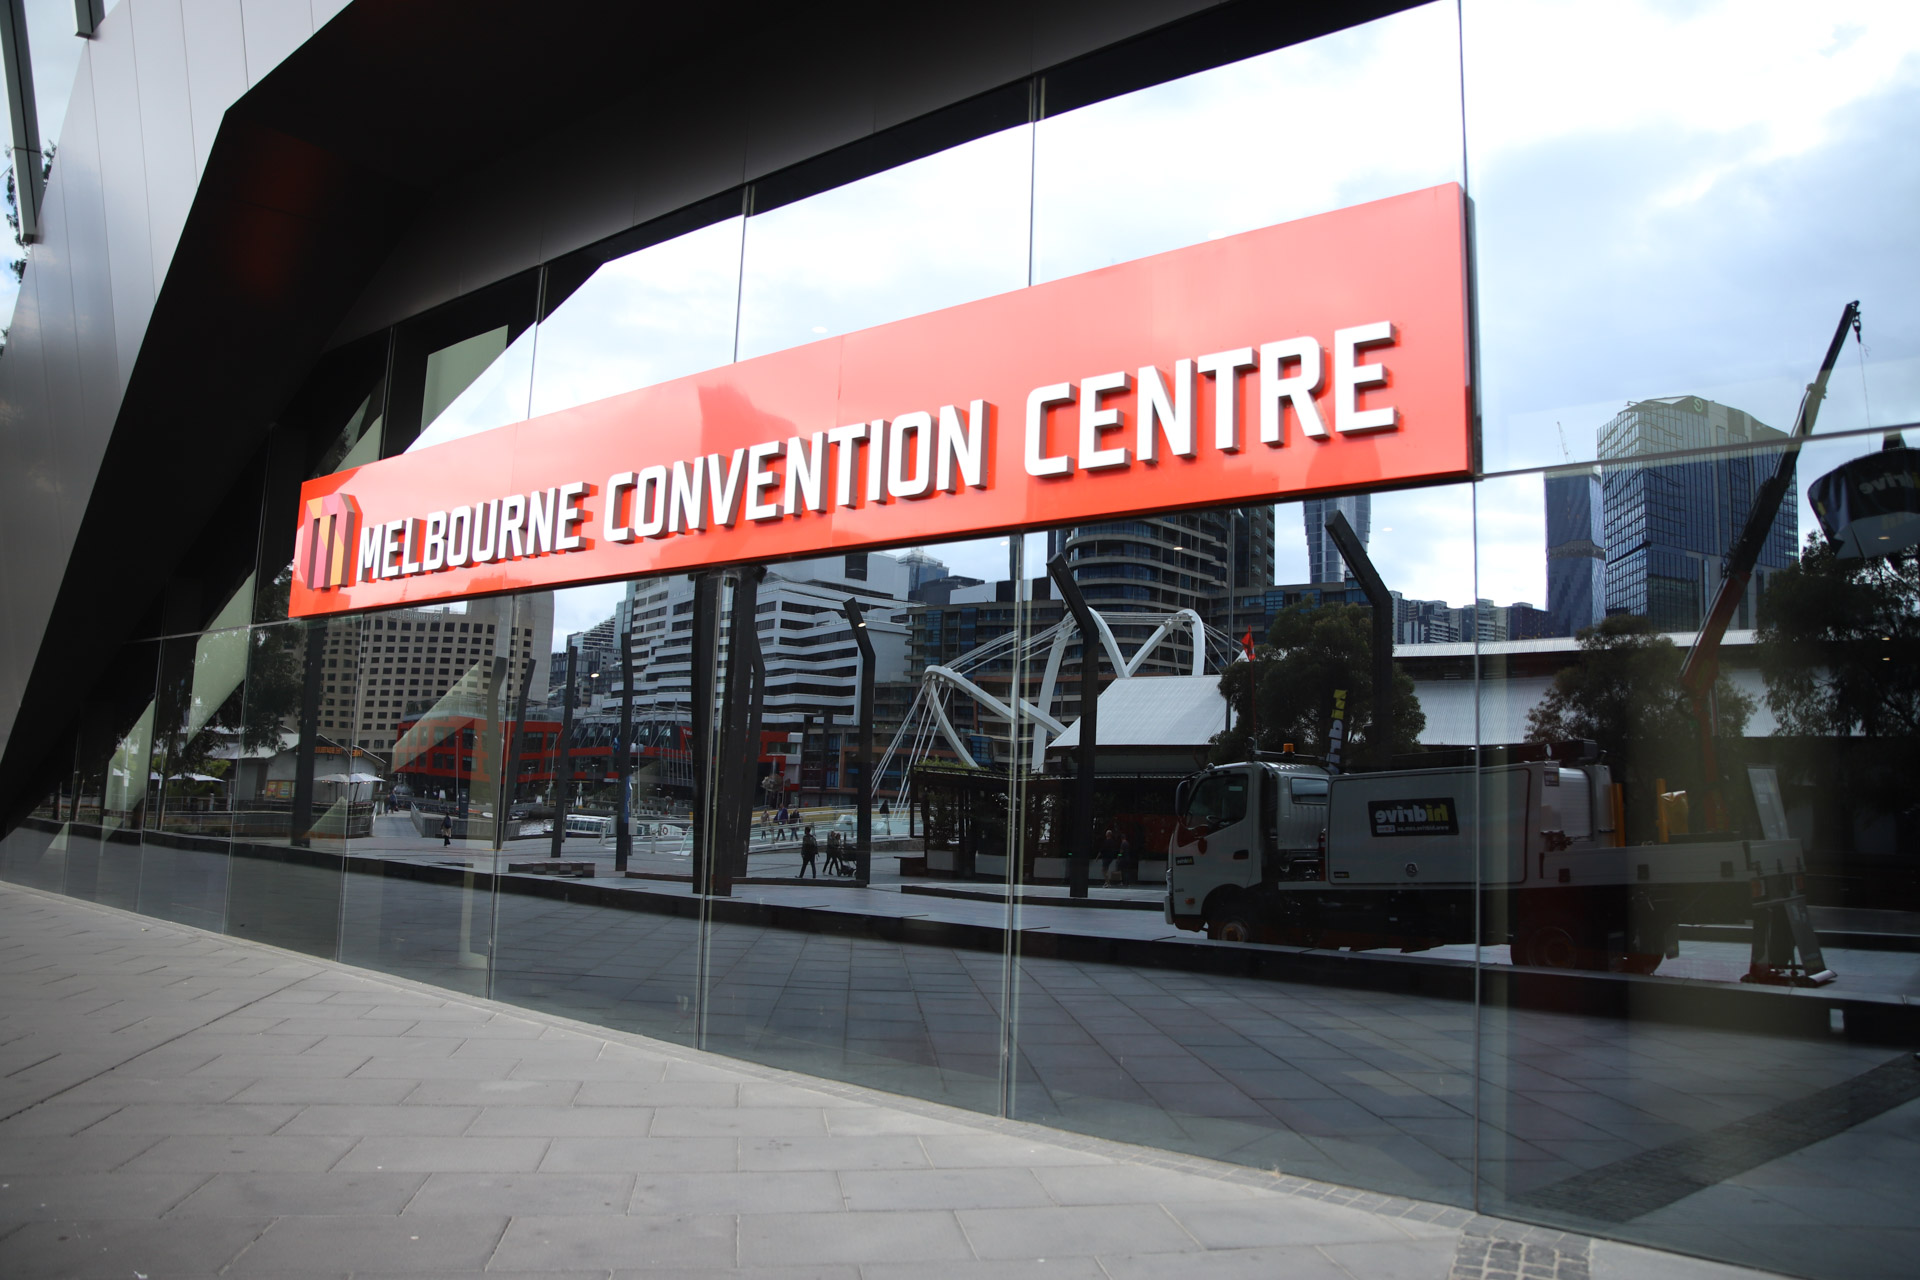 Afma conference and exhibition at the Melbourne convention centre